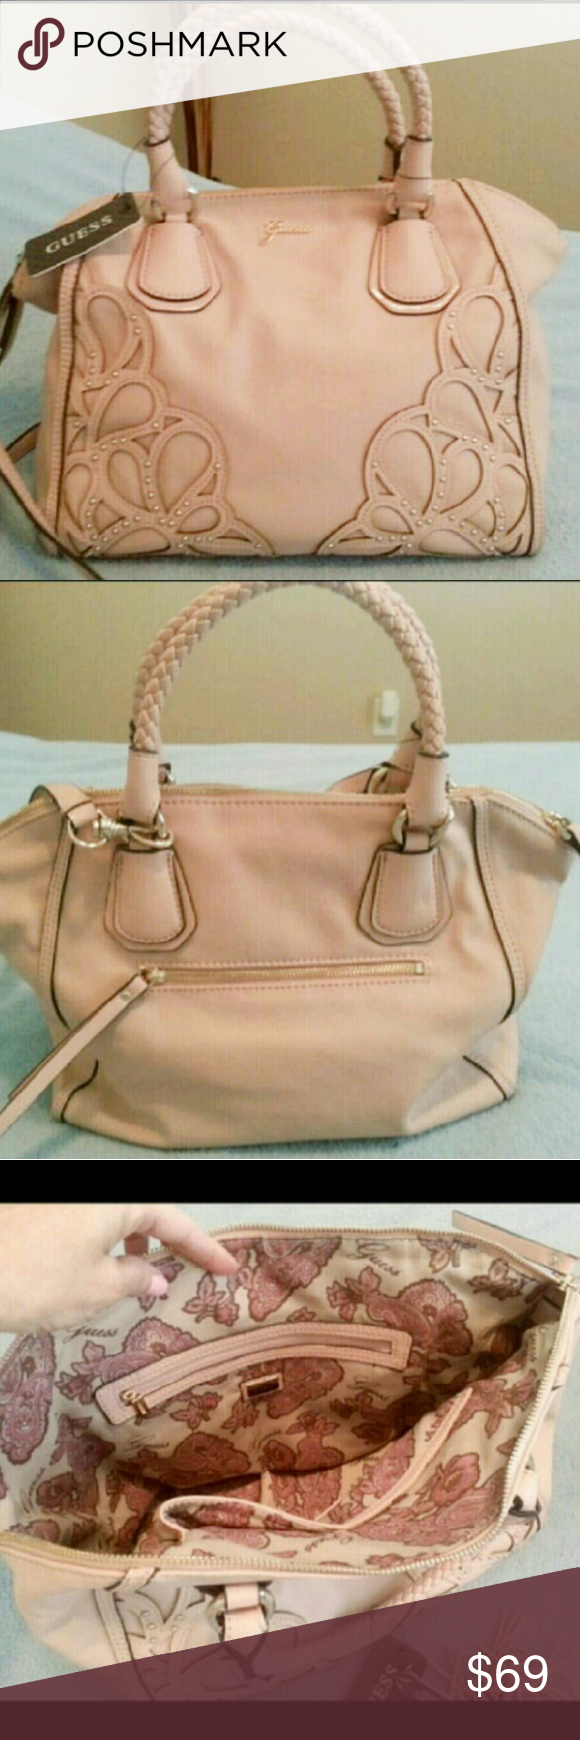 Genuine Pink Leather Guess Shoulder Handbag Nwt Authentic Purse Beautifully Made